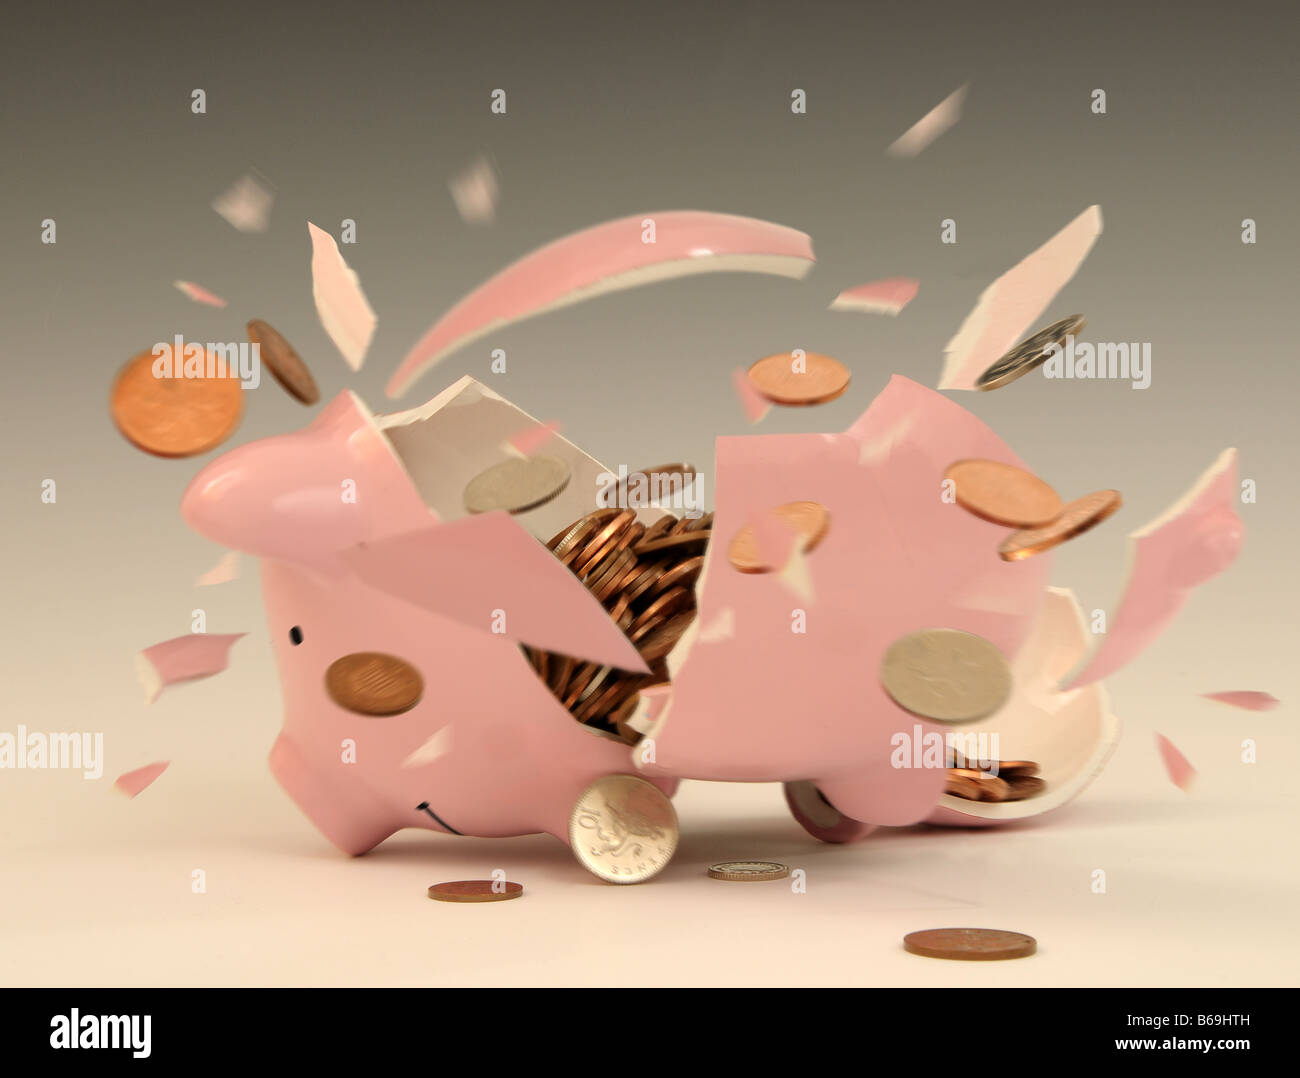 Piggy Bank being smashed open, image by Tony Rusecki Stock Photo